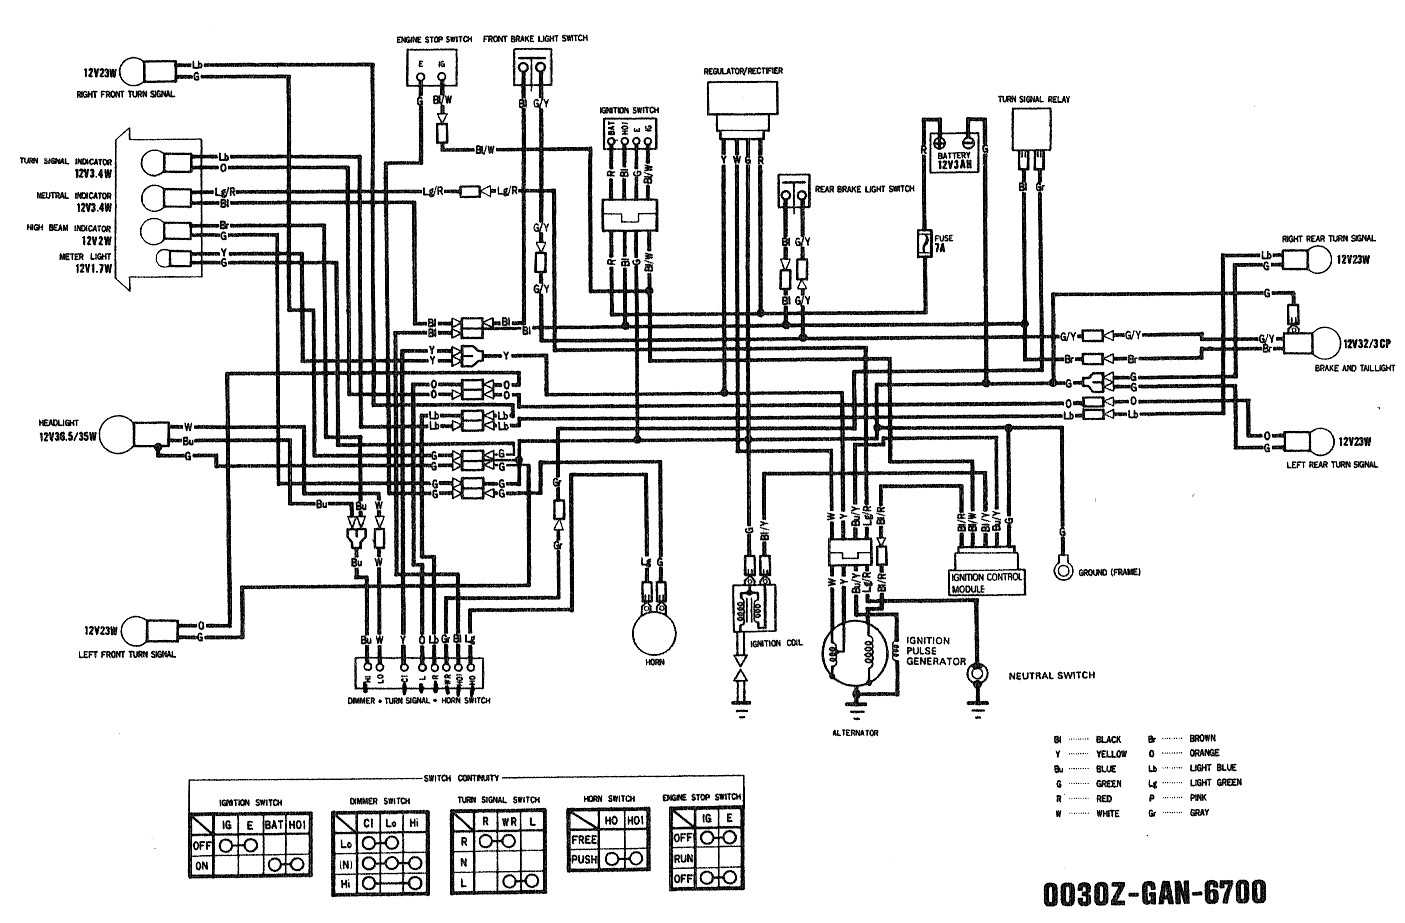 1971 Ct70 Wiring Diagram Honda 1974 Diagramrhsvlcusdesign